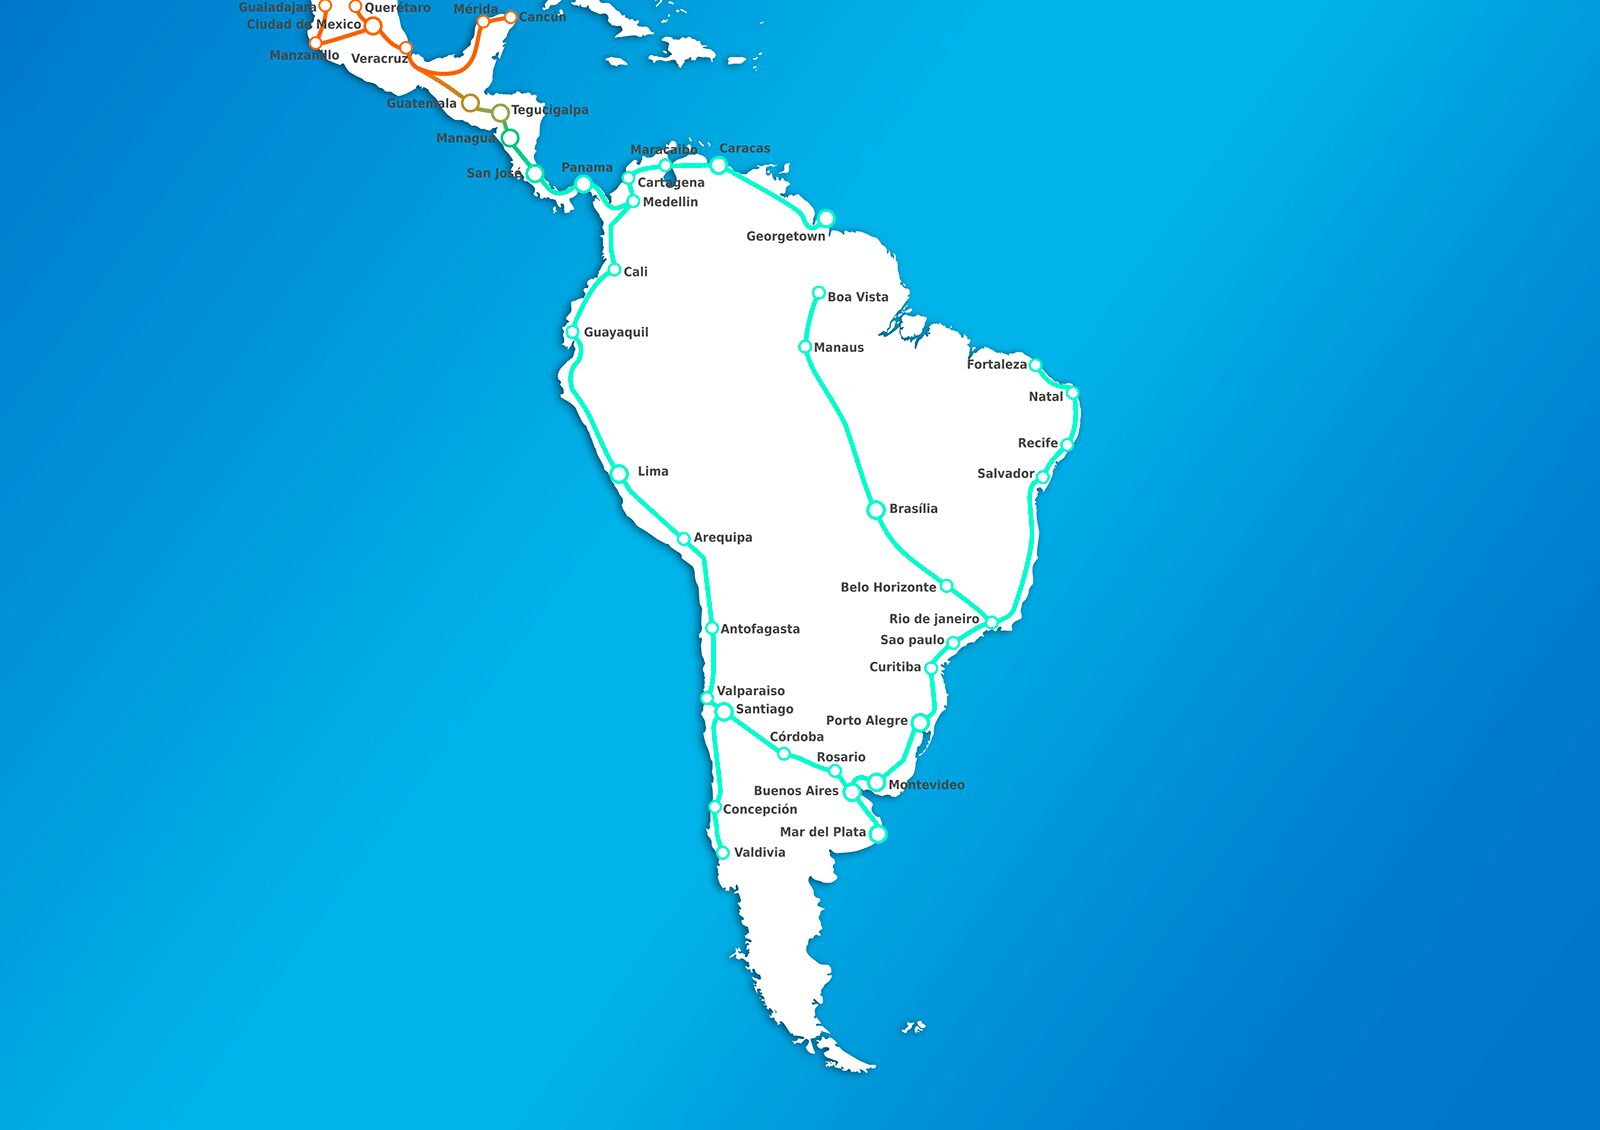 South America 2050 Map Stations